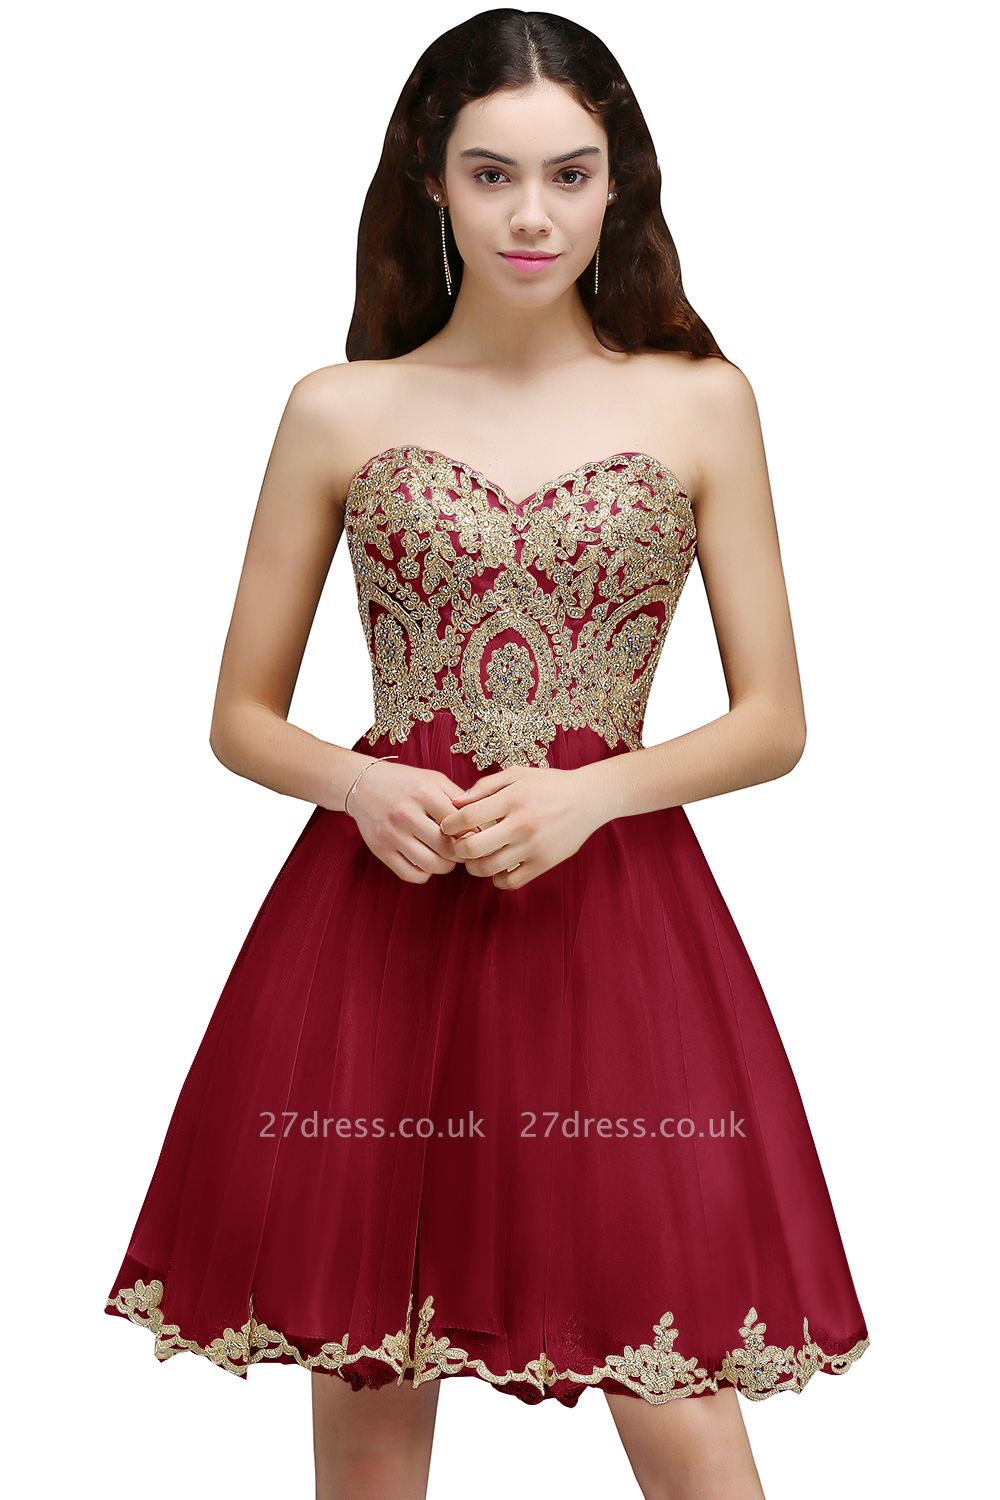 Lovely Sweetheart Short Appliques Lace-Up Homecoming Dress UK